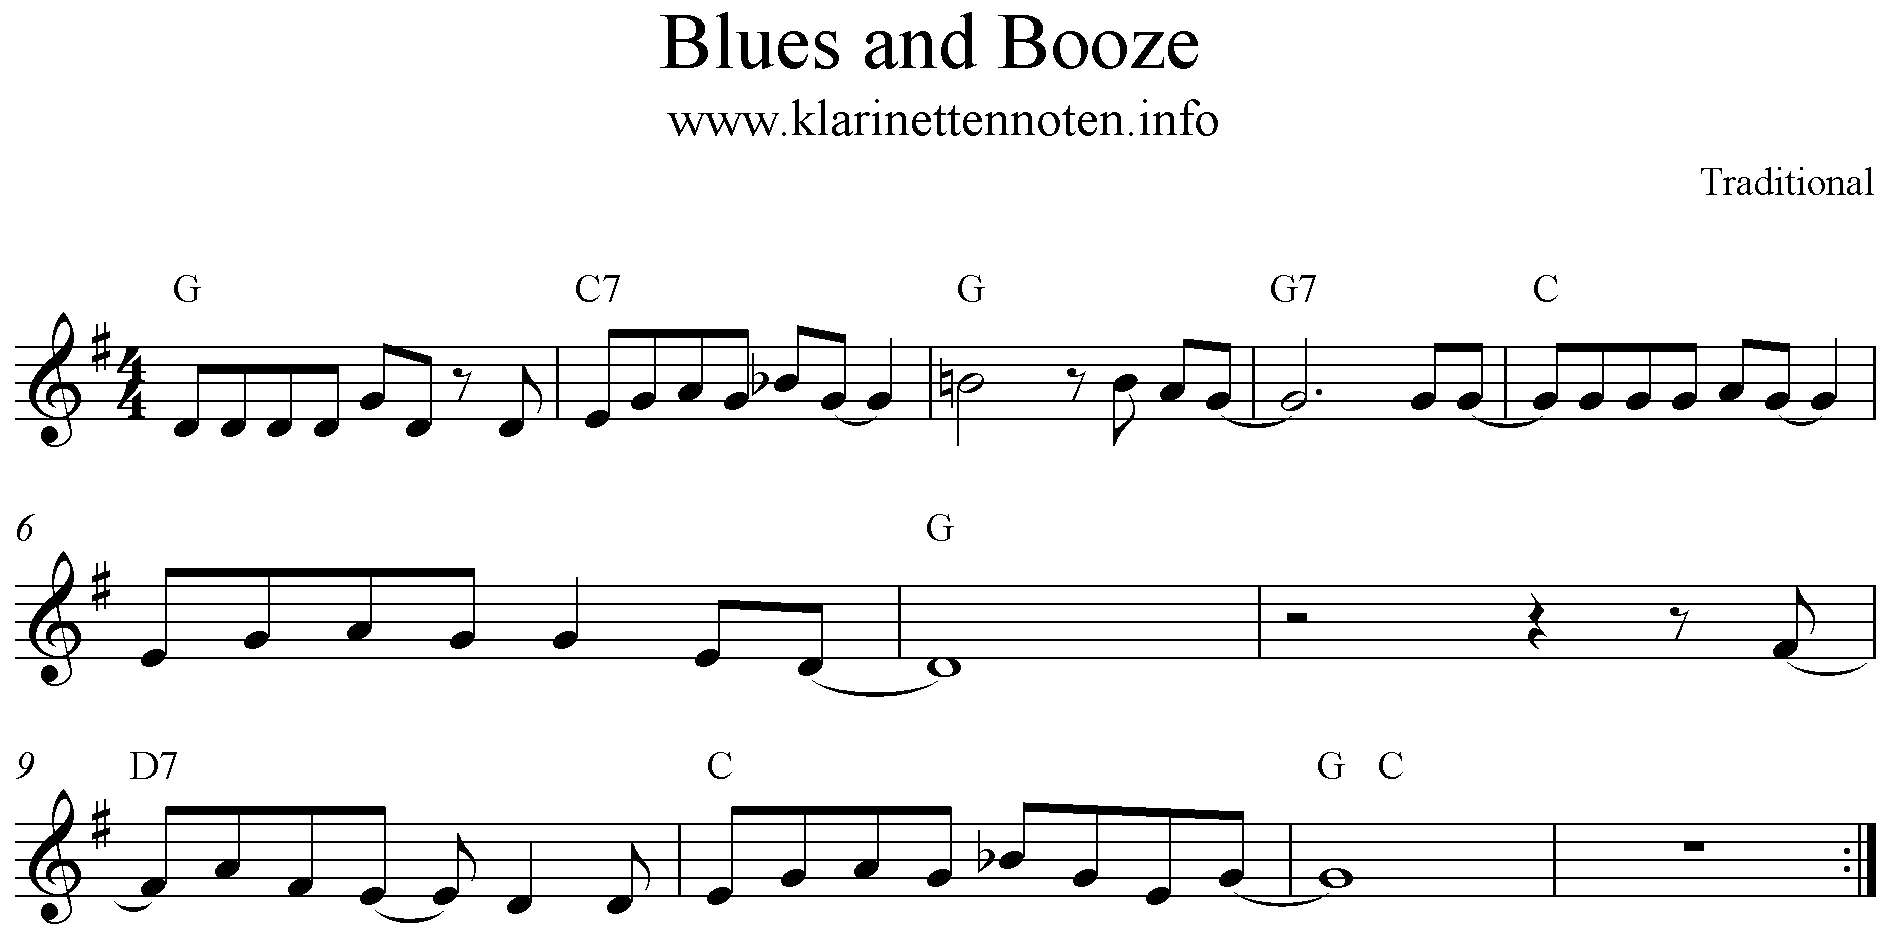 Blues and Booze, Noten, G-Dur